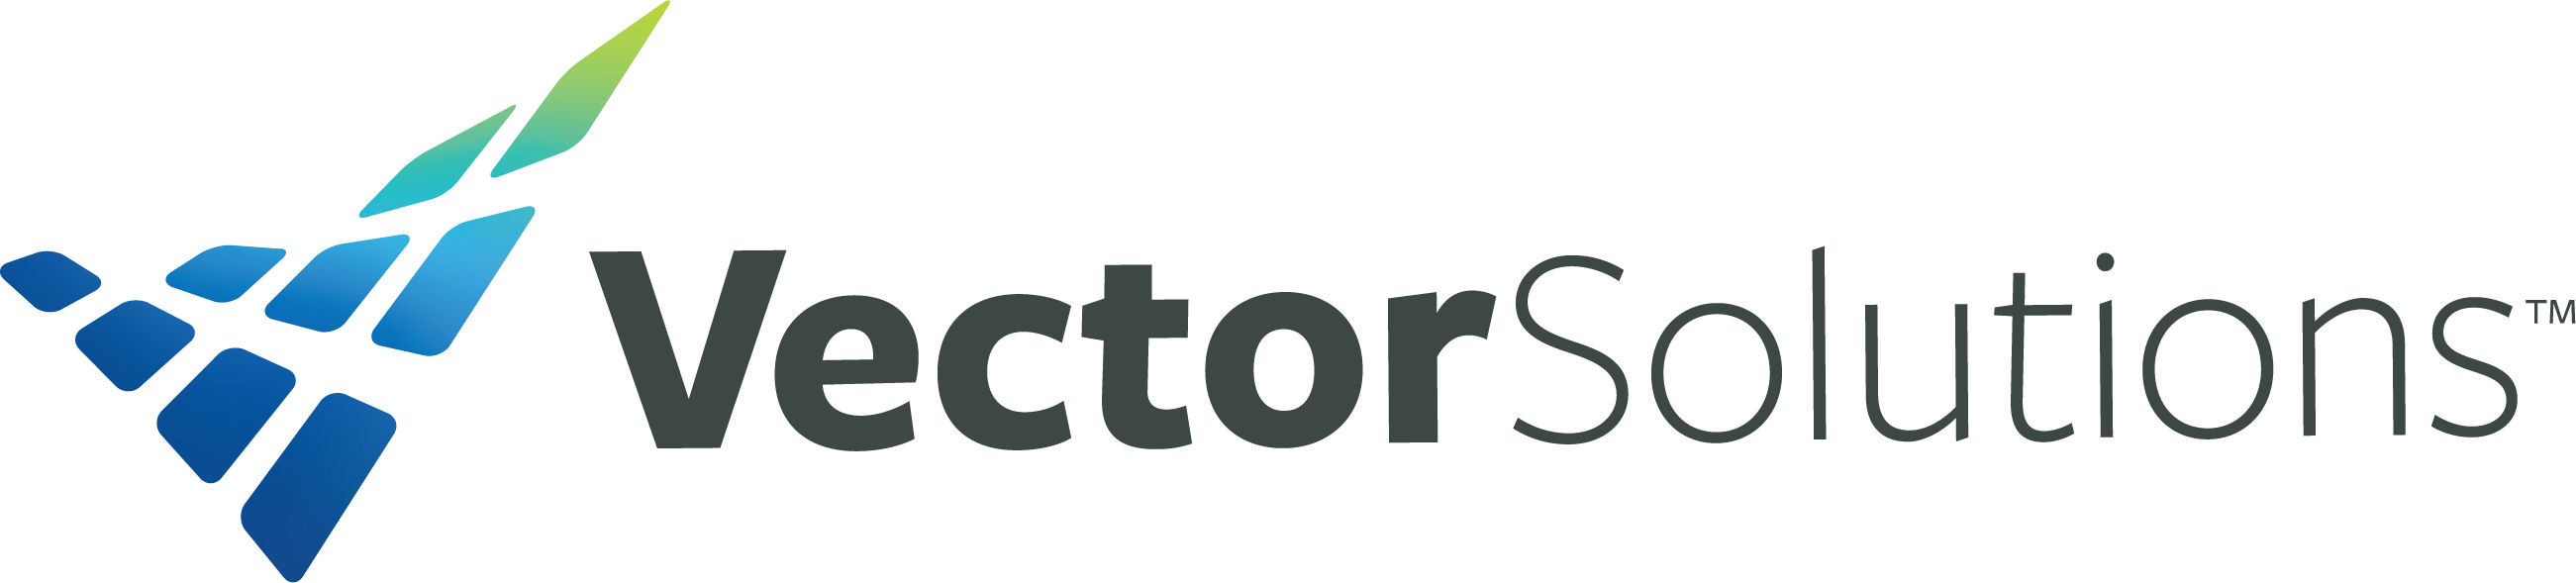 VectorSolutions